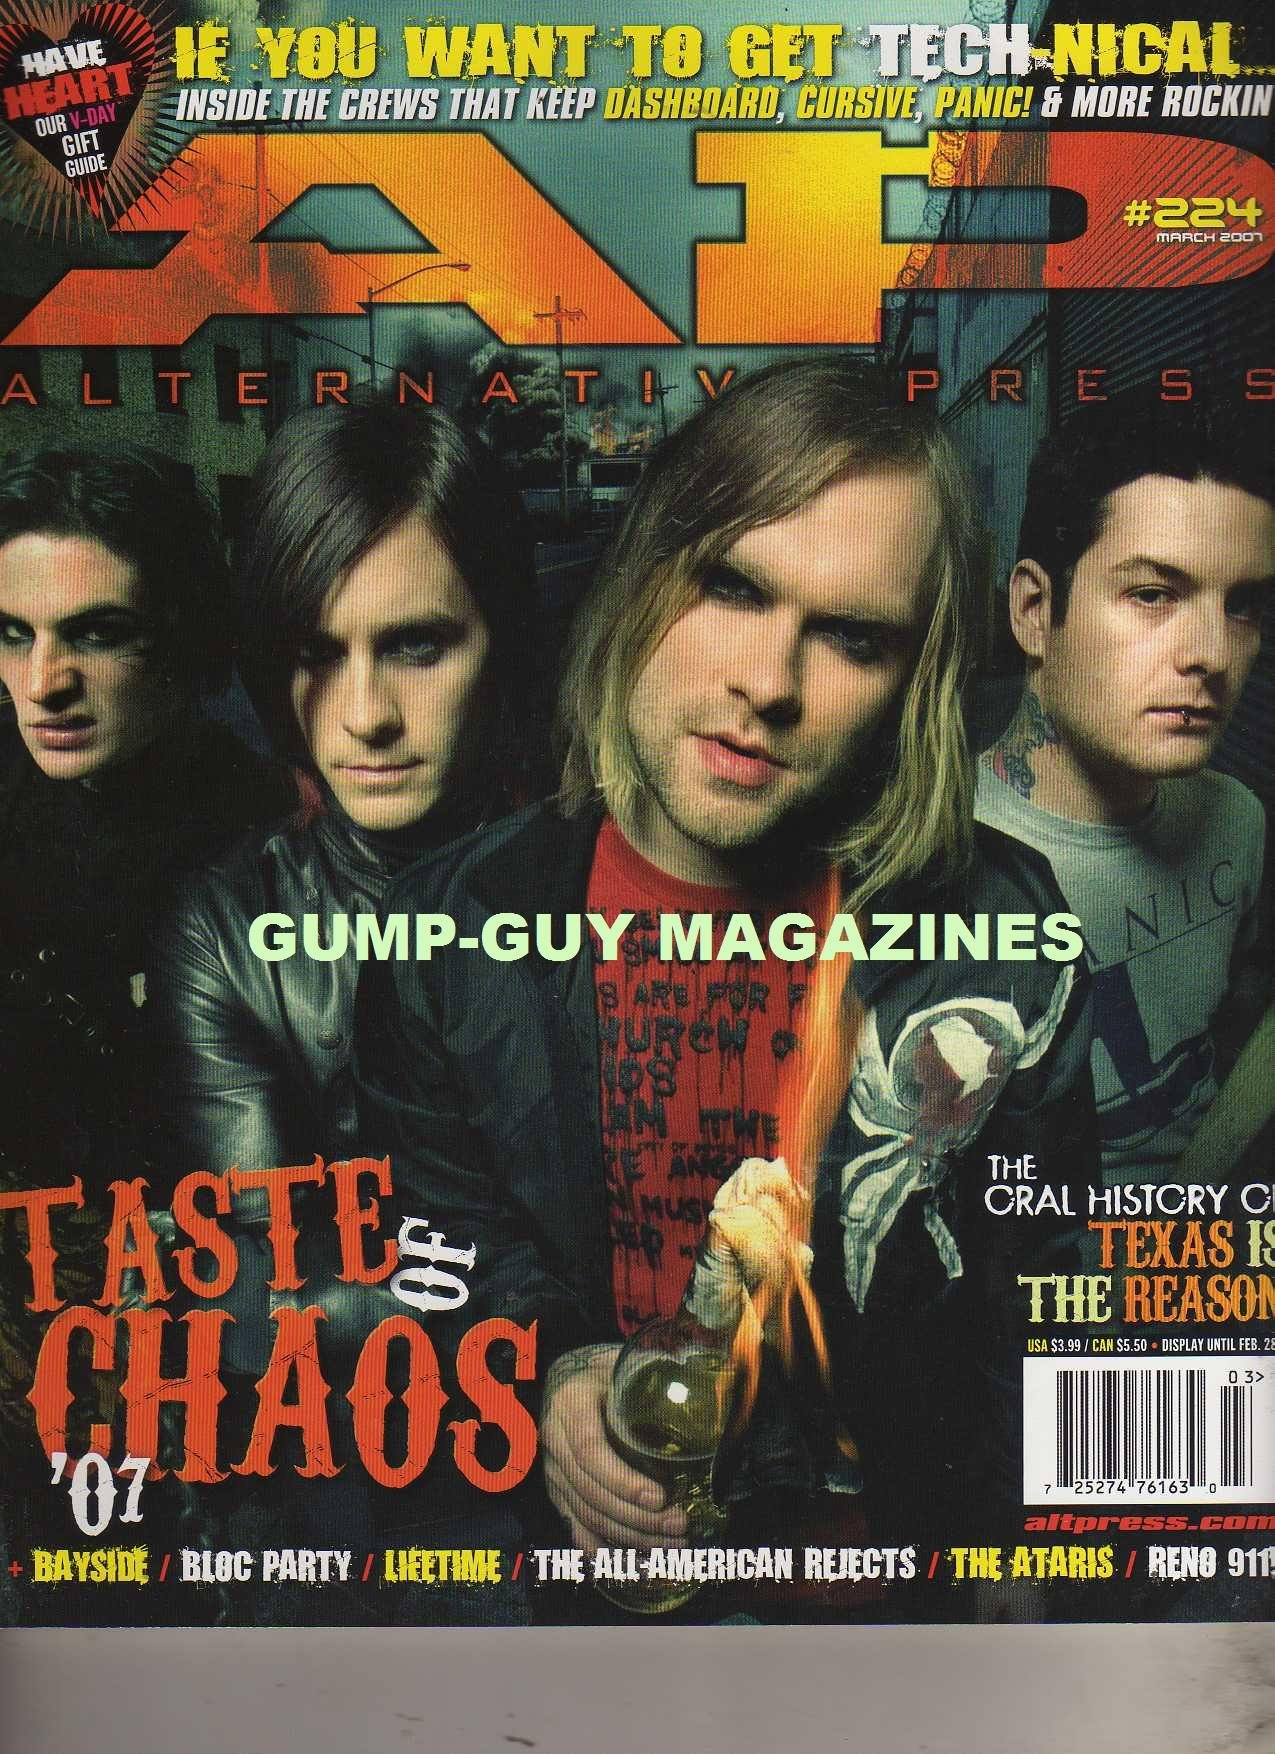 Download Alternative Press #224 AP March 2007 TASTE OF CHAOS The Oral History Of Texas Is The Reason THE WINTER WARPED MAKES ITS THIRD ANNUAL CAMPAIGN ACROSS NORTH AMERICA THIS YEAR PDF